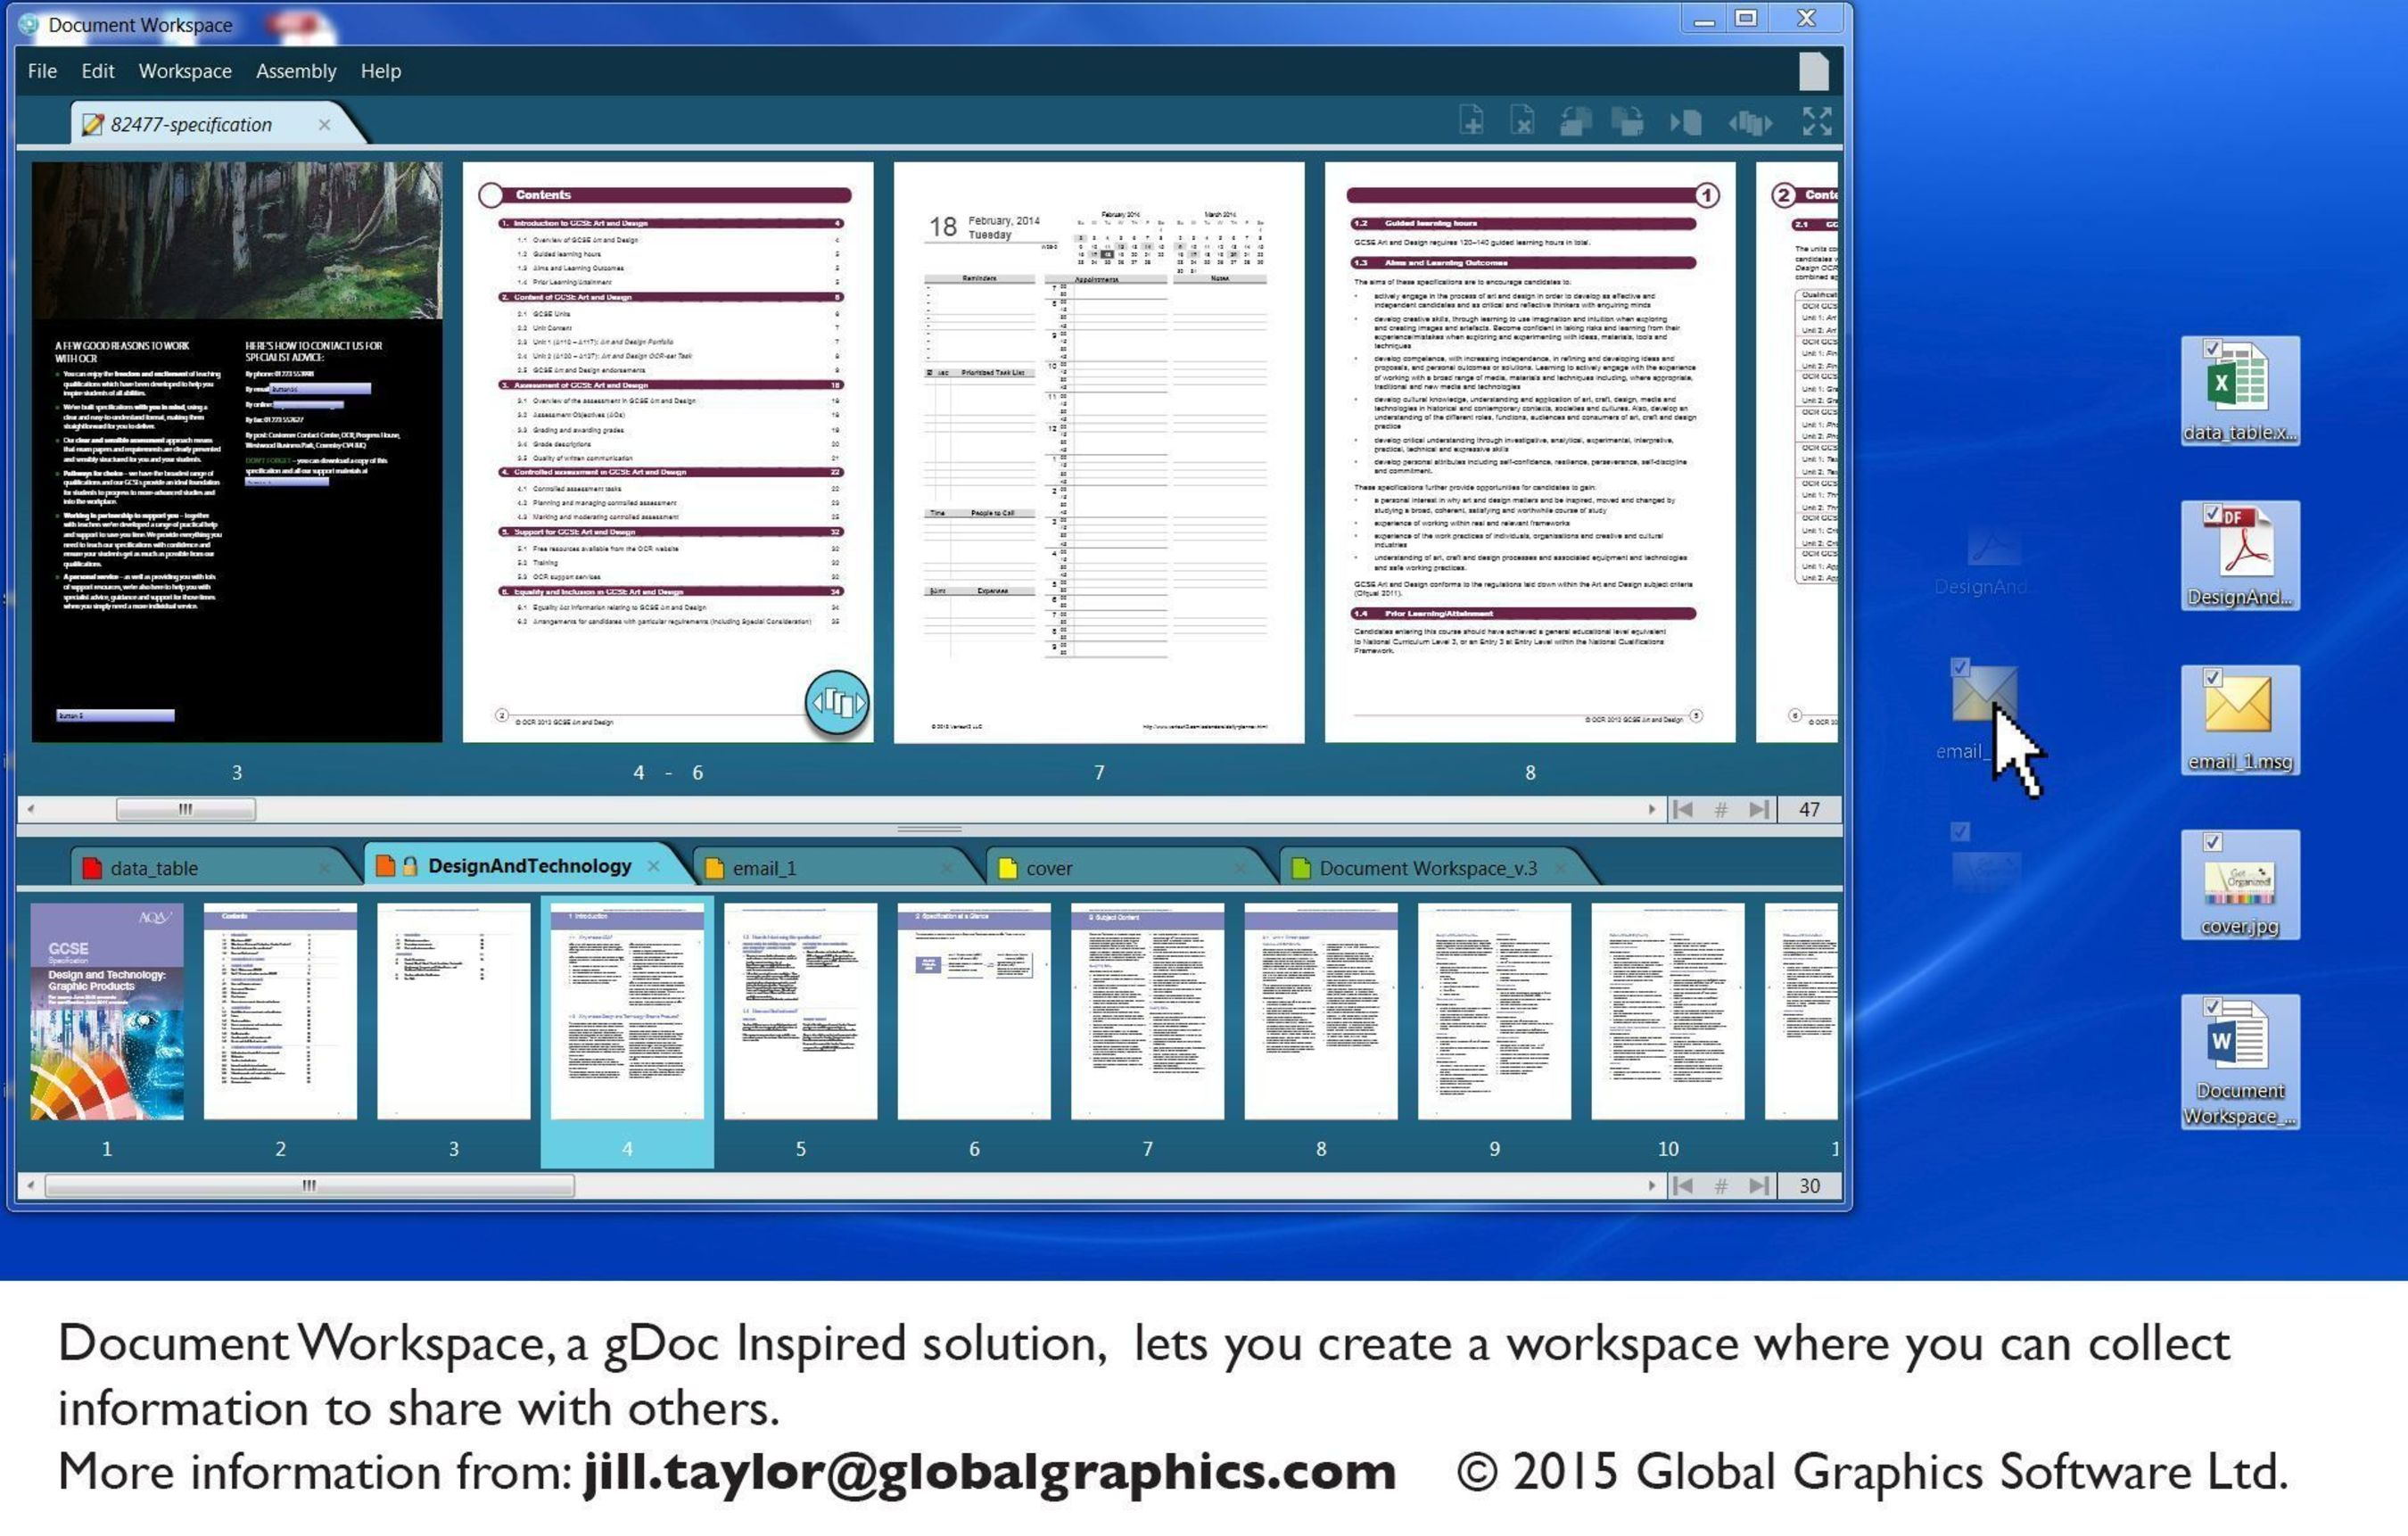 Document Workspace, a gDoc Inspired solution, lets you create a workspace where you can collect information to ...